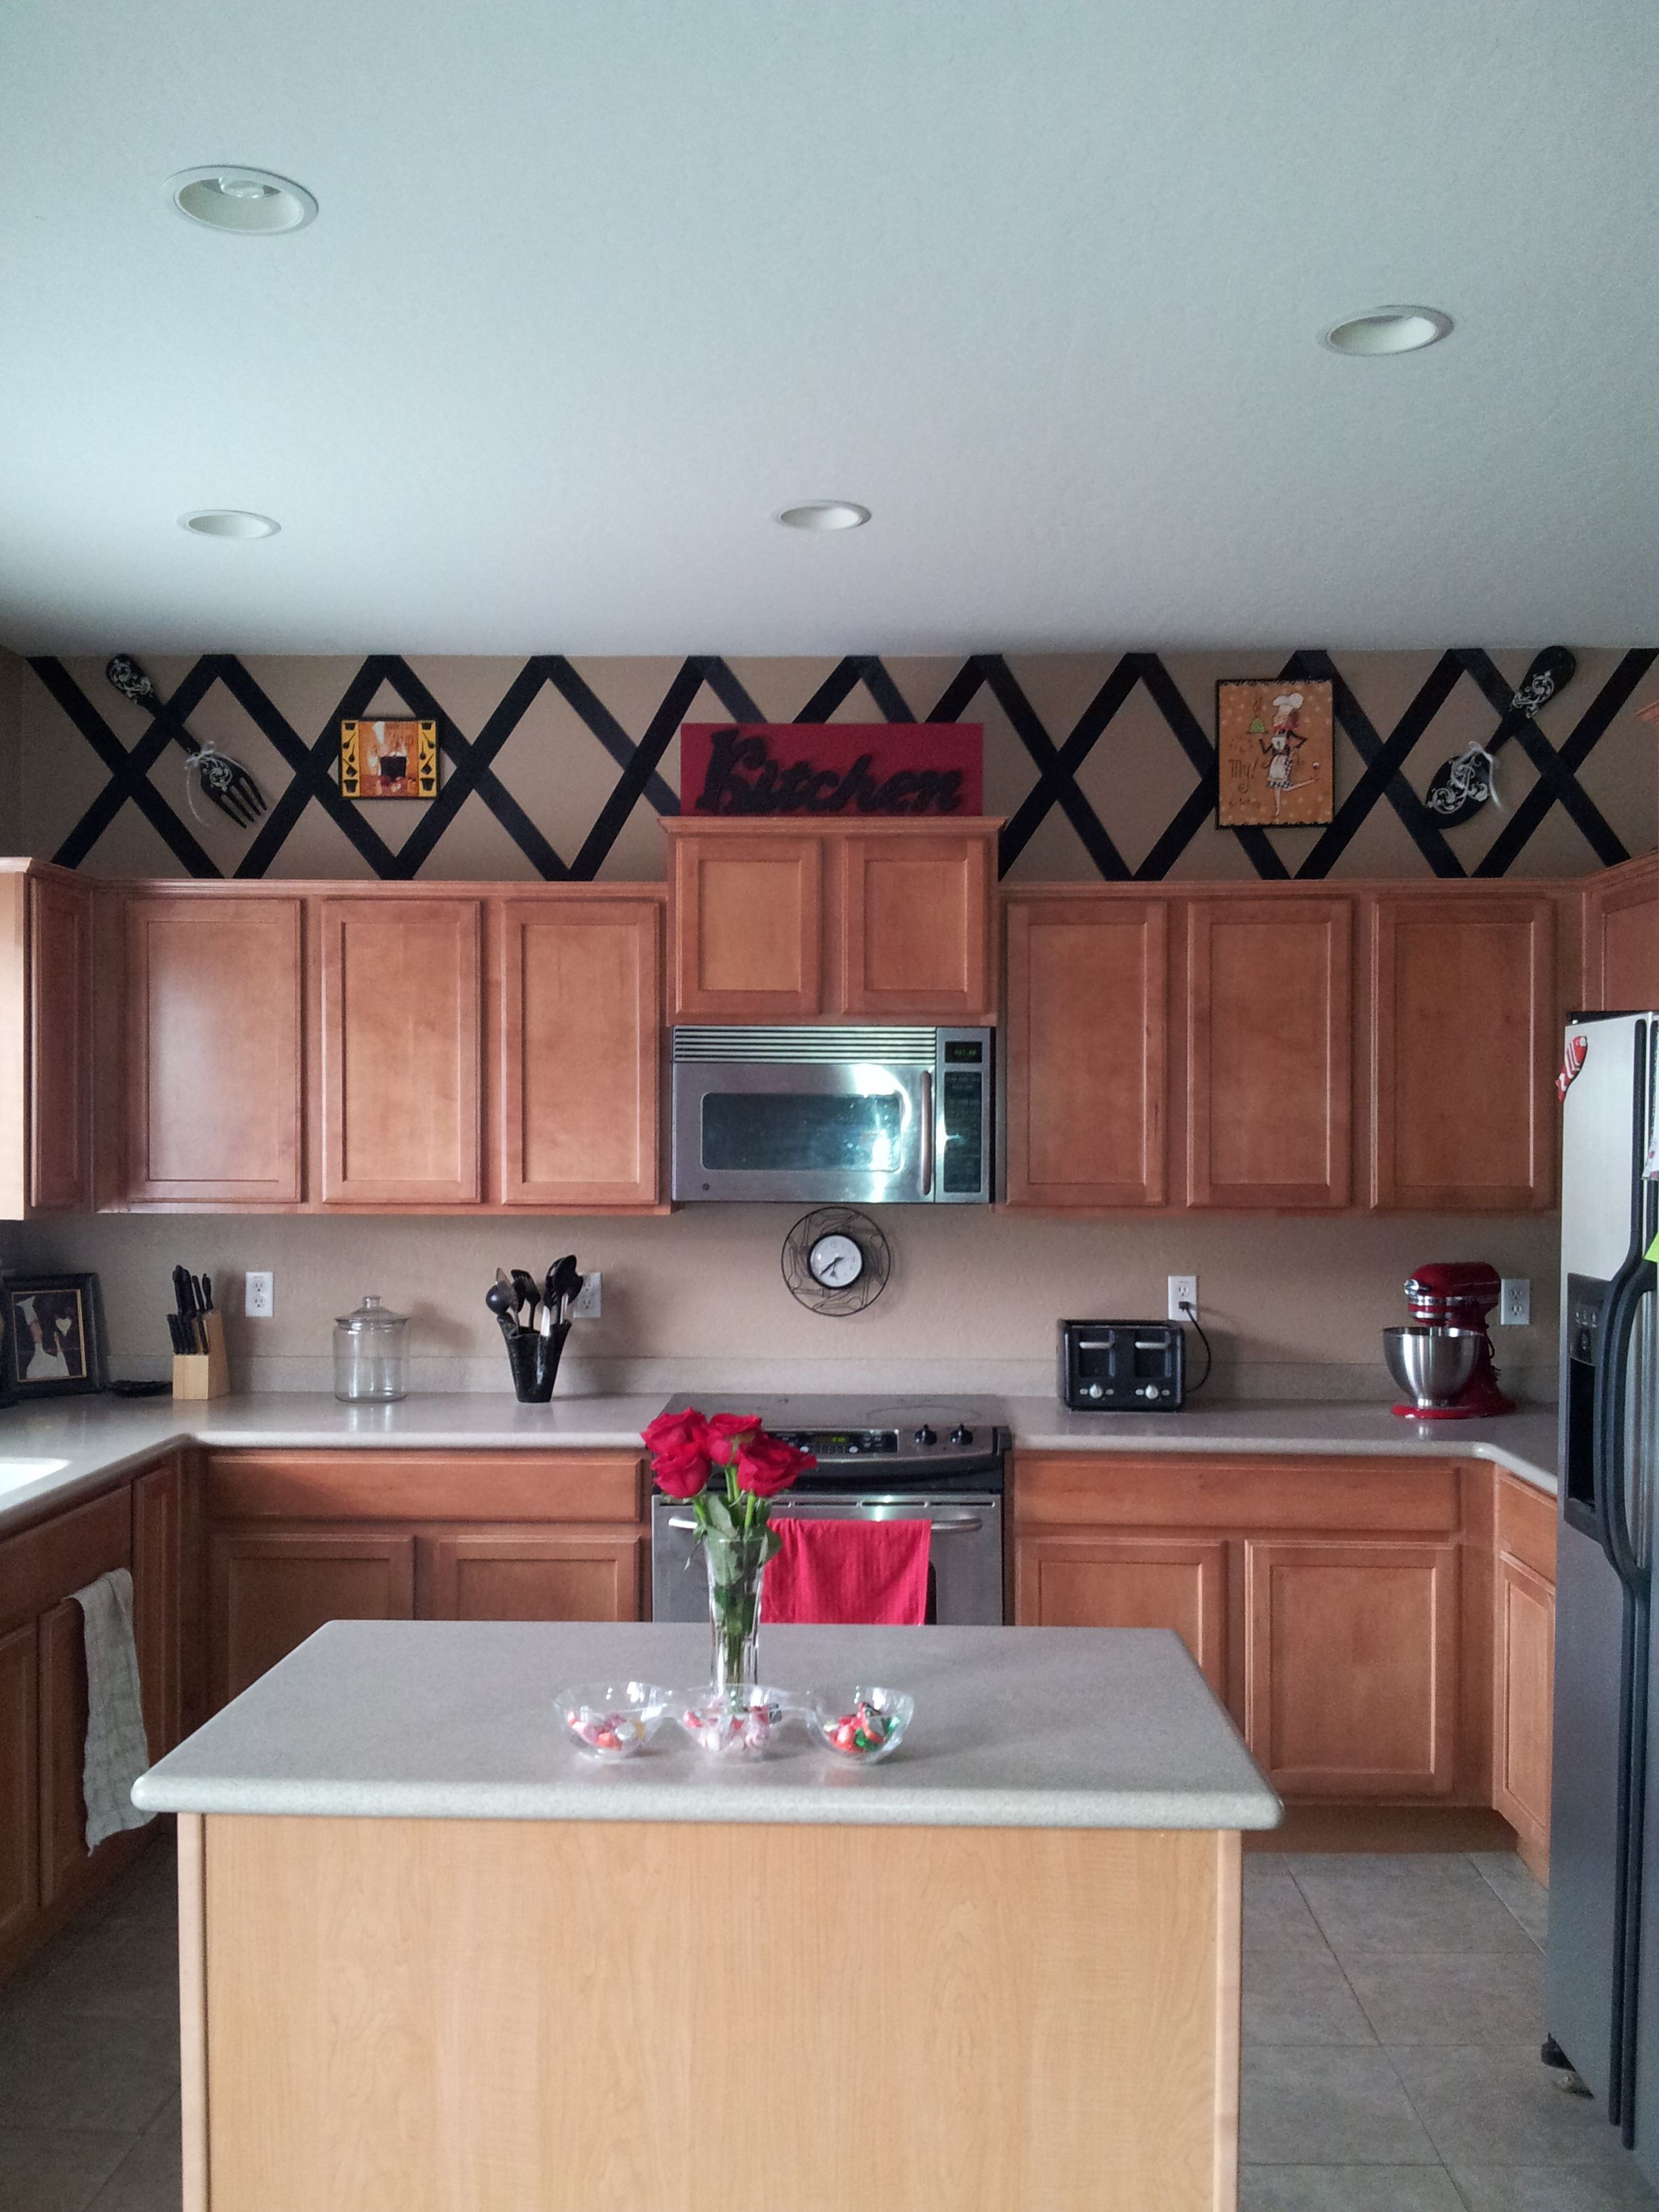 My kitchen :) I took black ribbon and hot glued it to the wall. added a few pics and called it good! All of this for under $100.